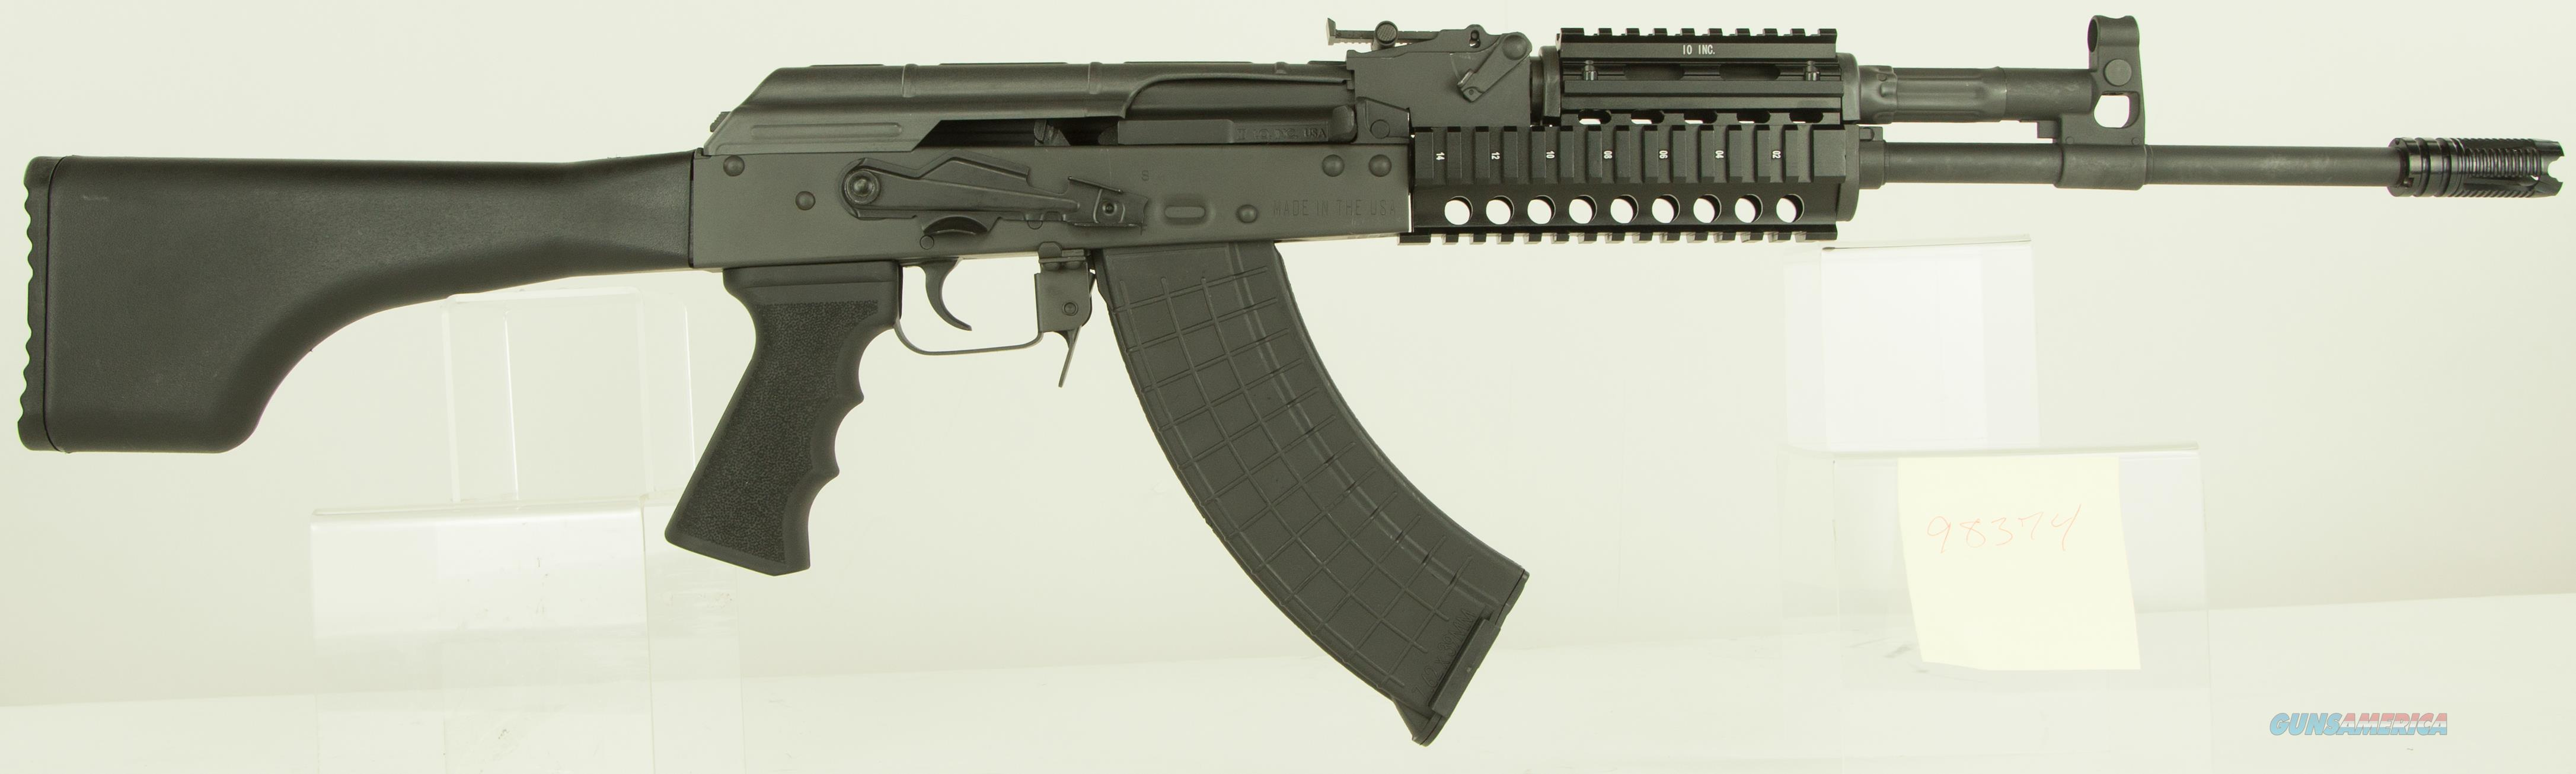 "I.O. IODM2020 AKM247 Tactical Rifle Semi-Automatic 7.62x39mm 16.25"" 30+1 Synthetic Black Stk Black  Guns > Rifles > AK-47 Rifles (and copies) > Full Stock"